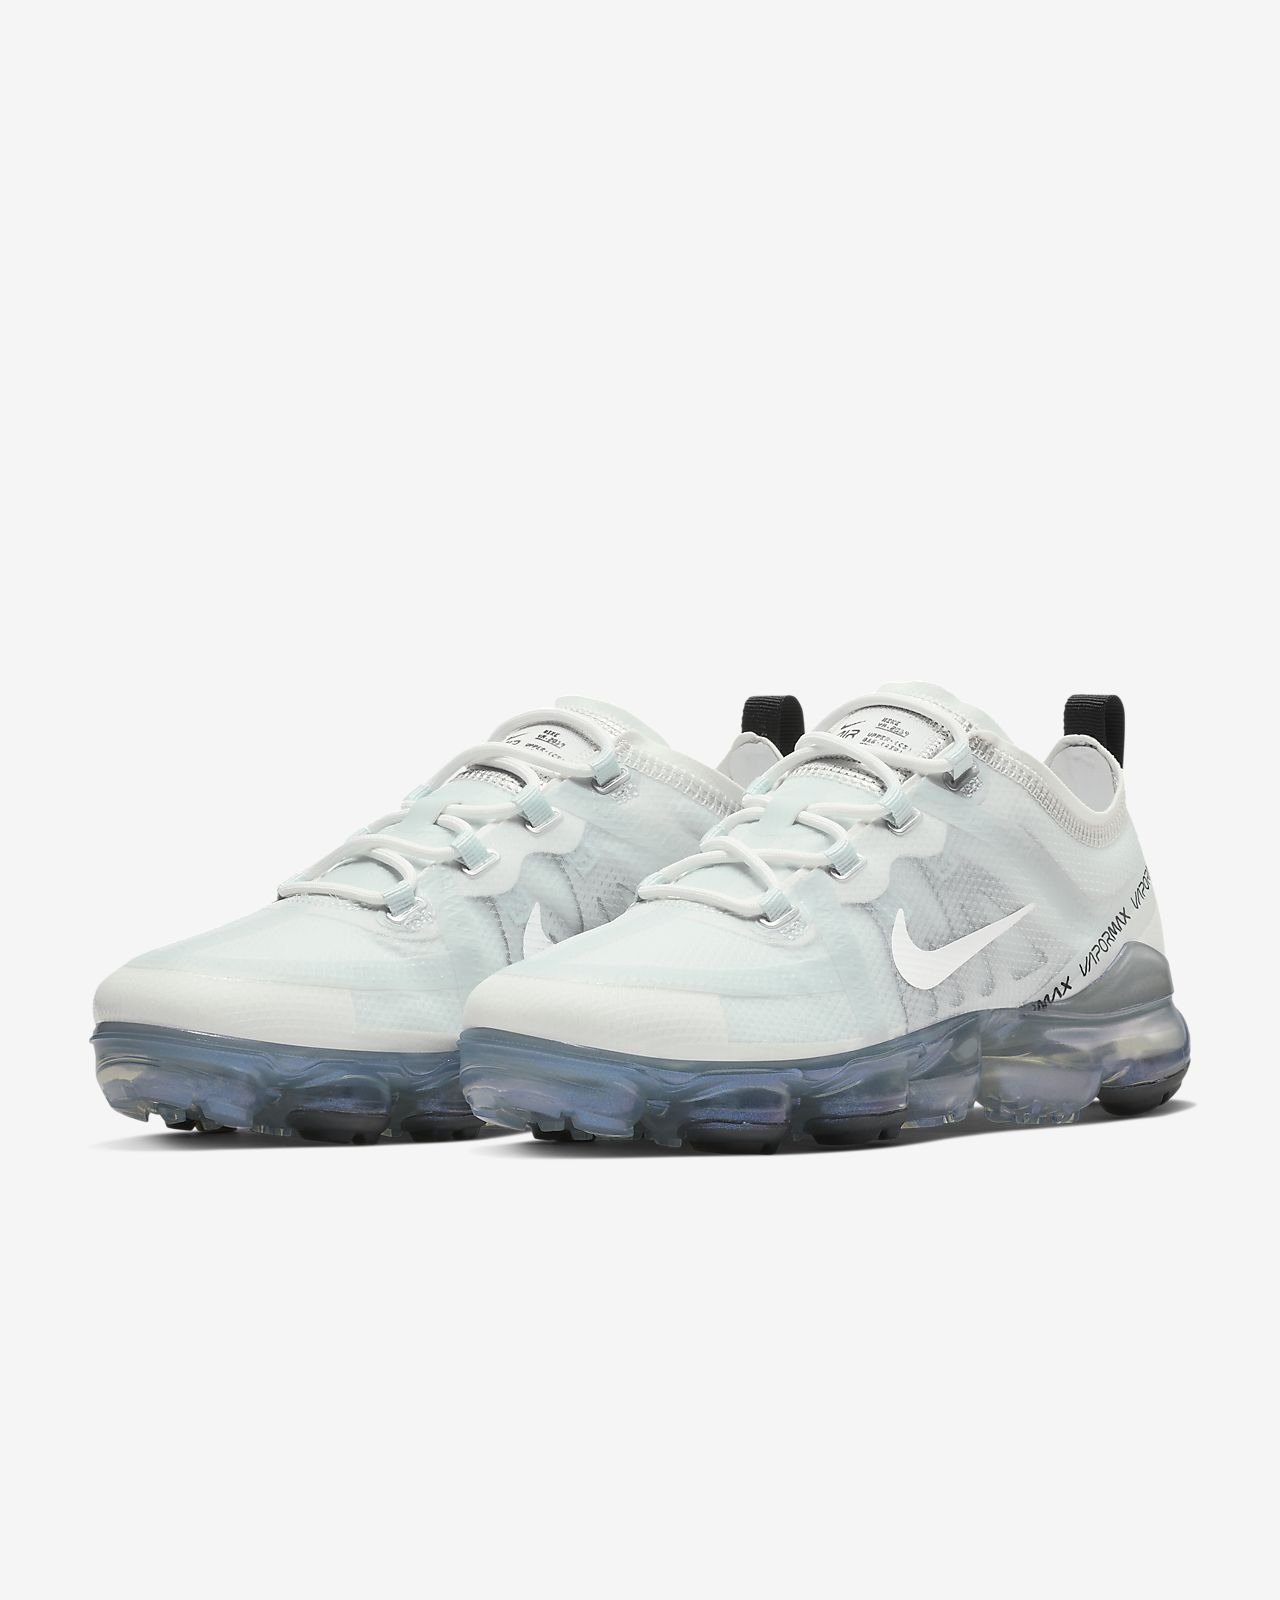 lowest price 51201 96f73 ... Chaussure Nike Air VaporMax 2019 pour Femme